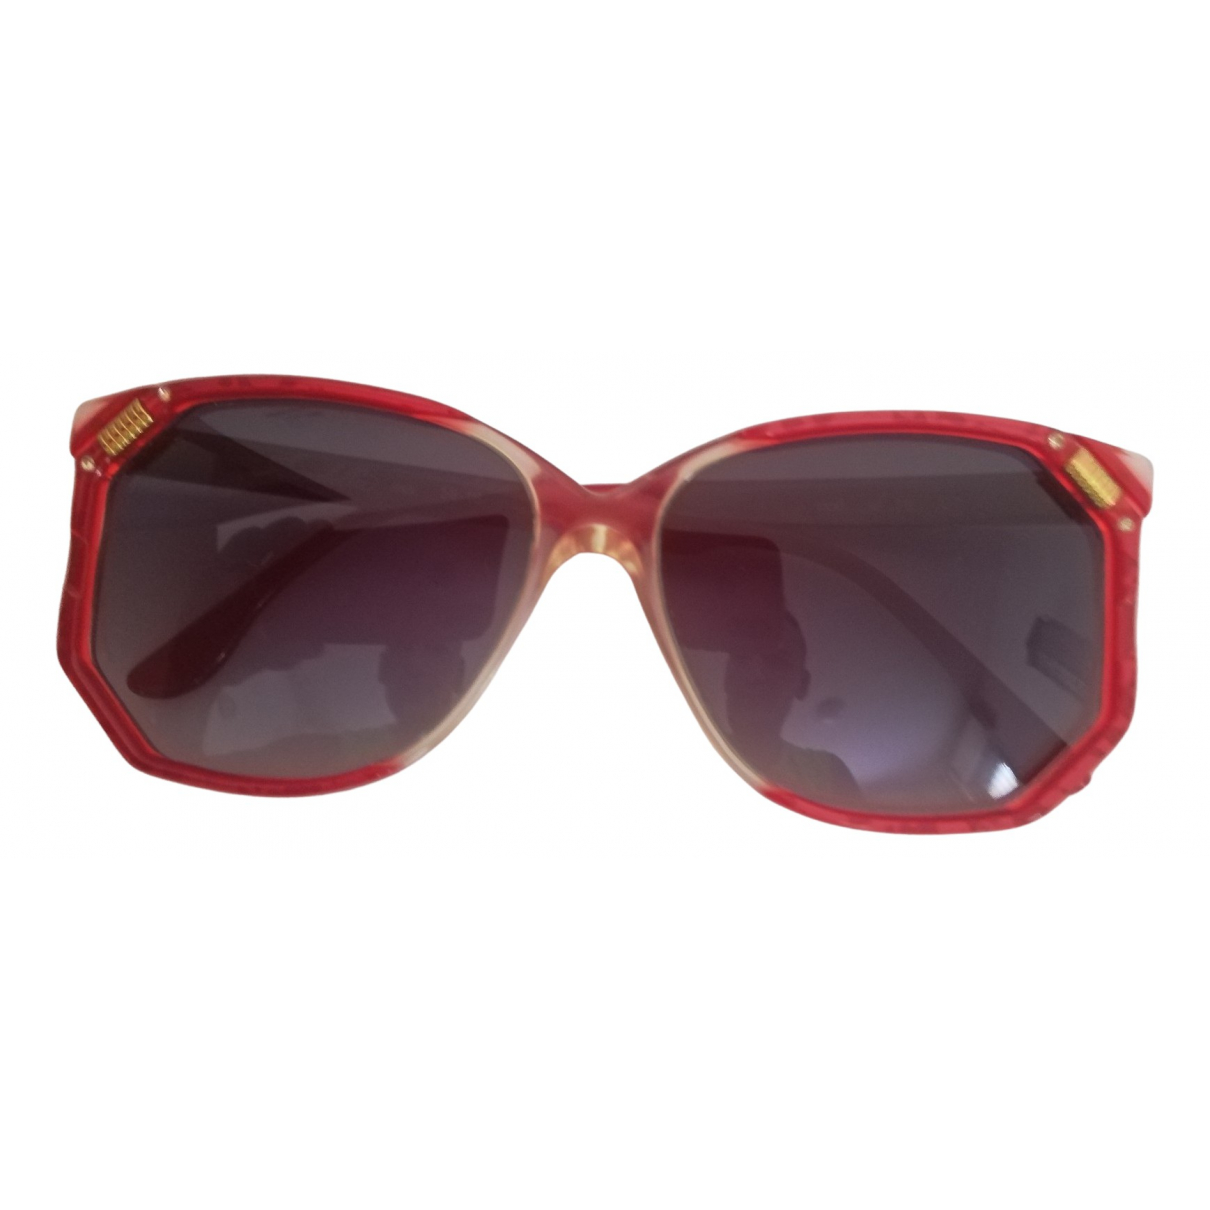 Annabella Pavia \N Red Sunglasses for Women \N